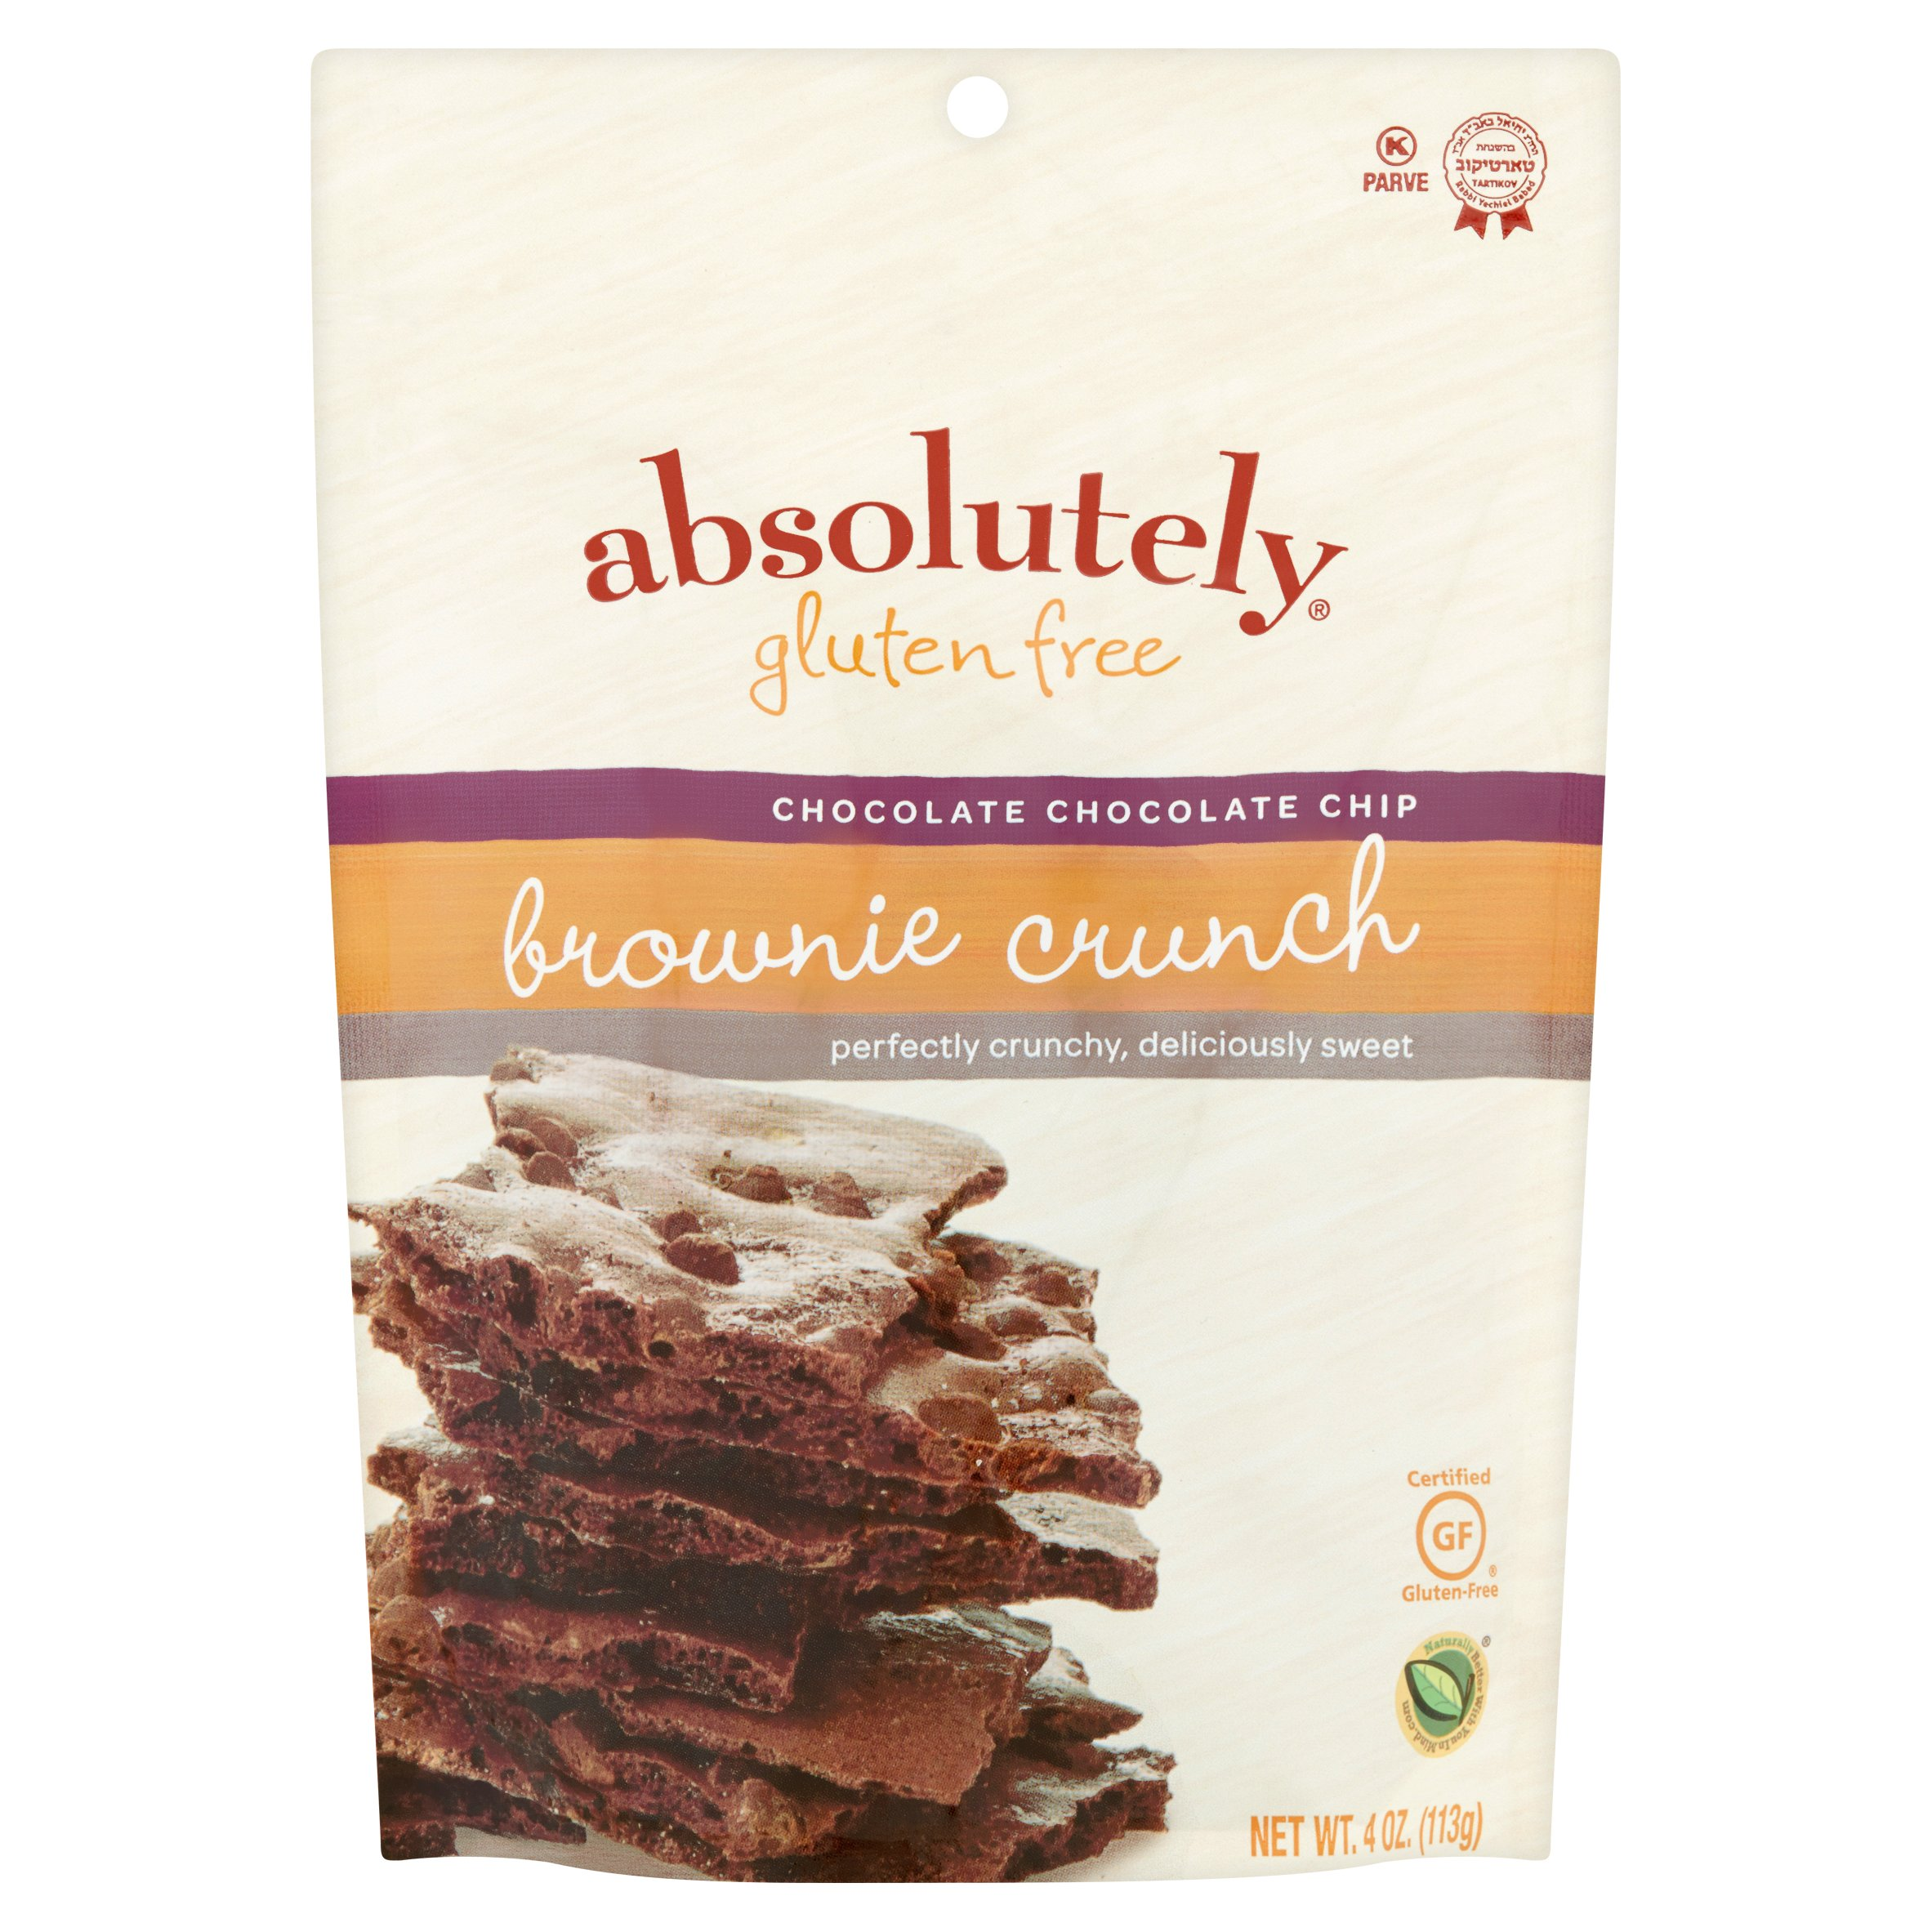 Image of Absolutely Gluten Free Chocolate Chip Brownie Crunch, 4 oz, 6 pack